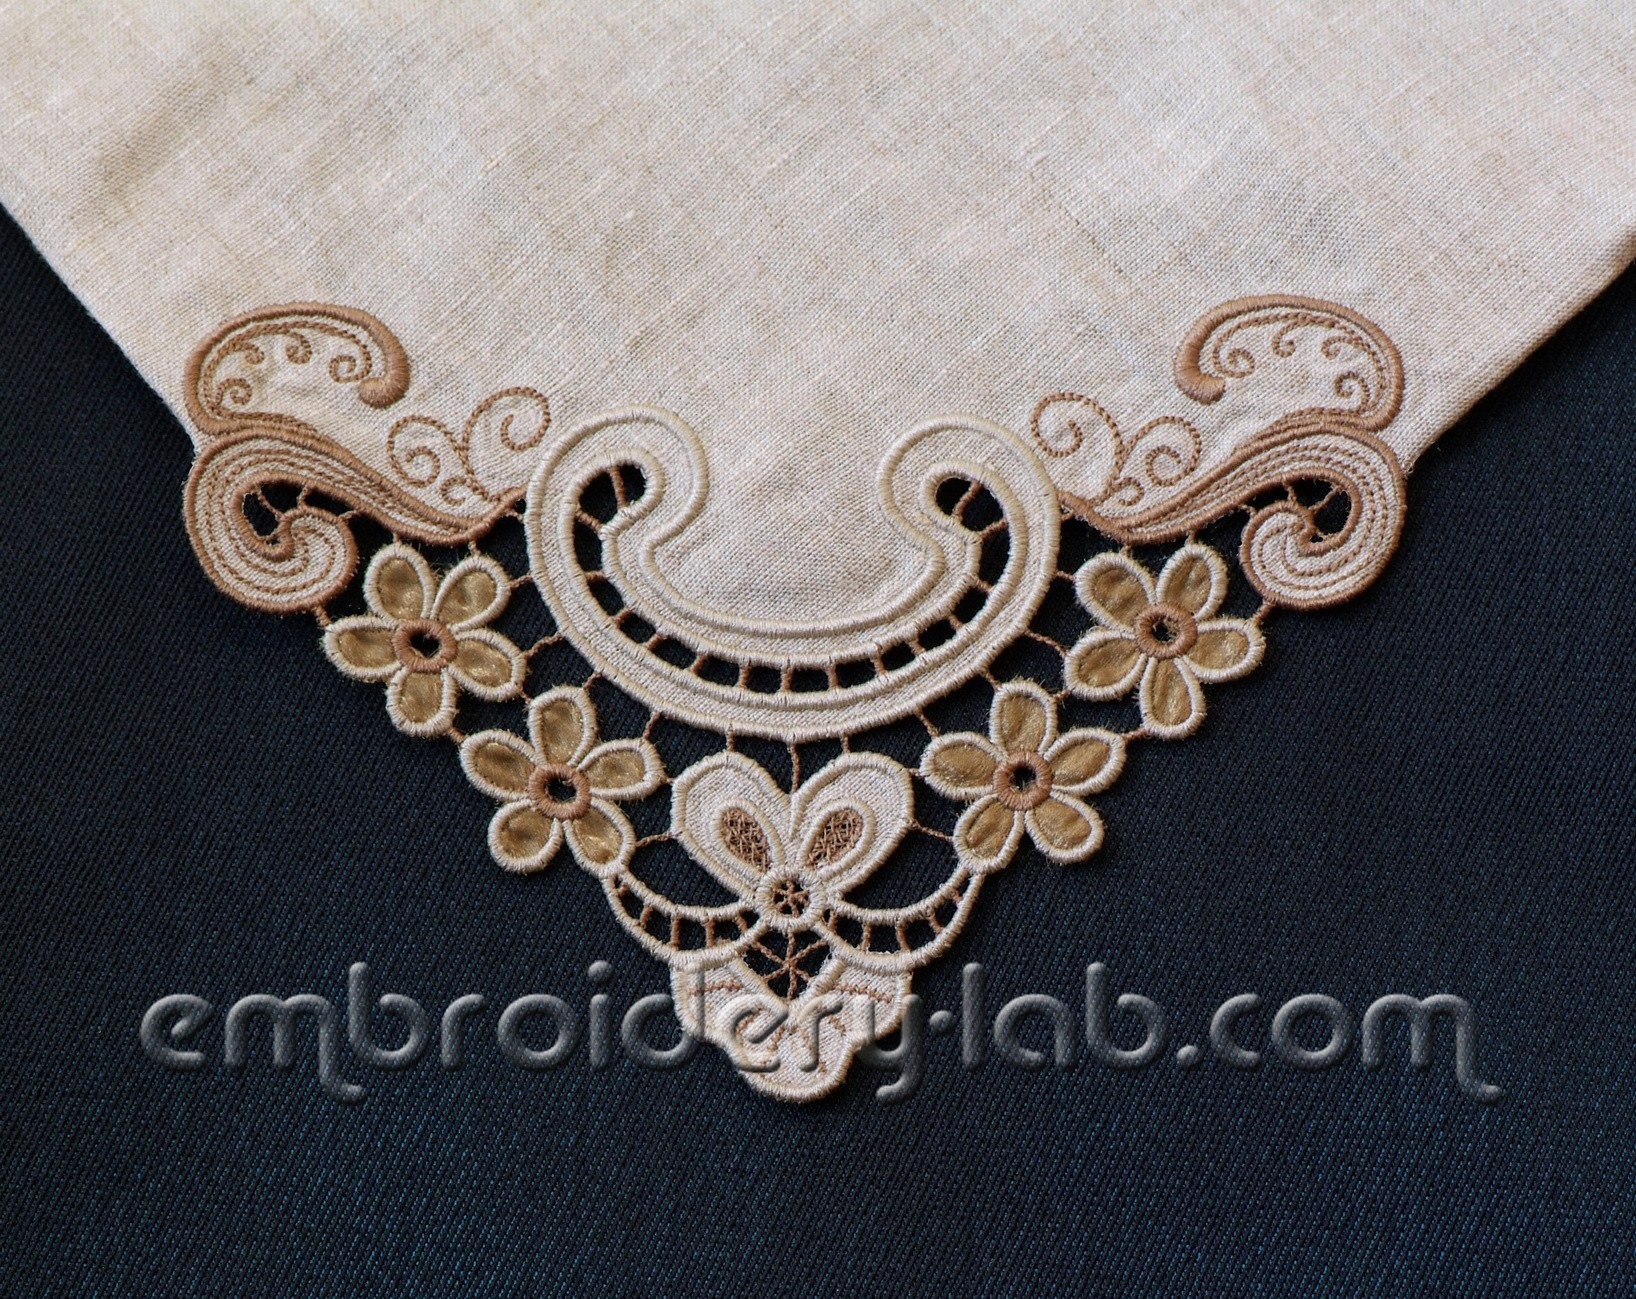 Corner Cutwork 0003 Machine Embroidery Designs Embroidery Lab